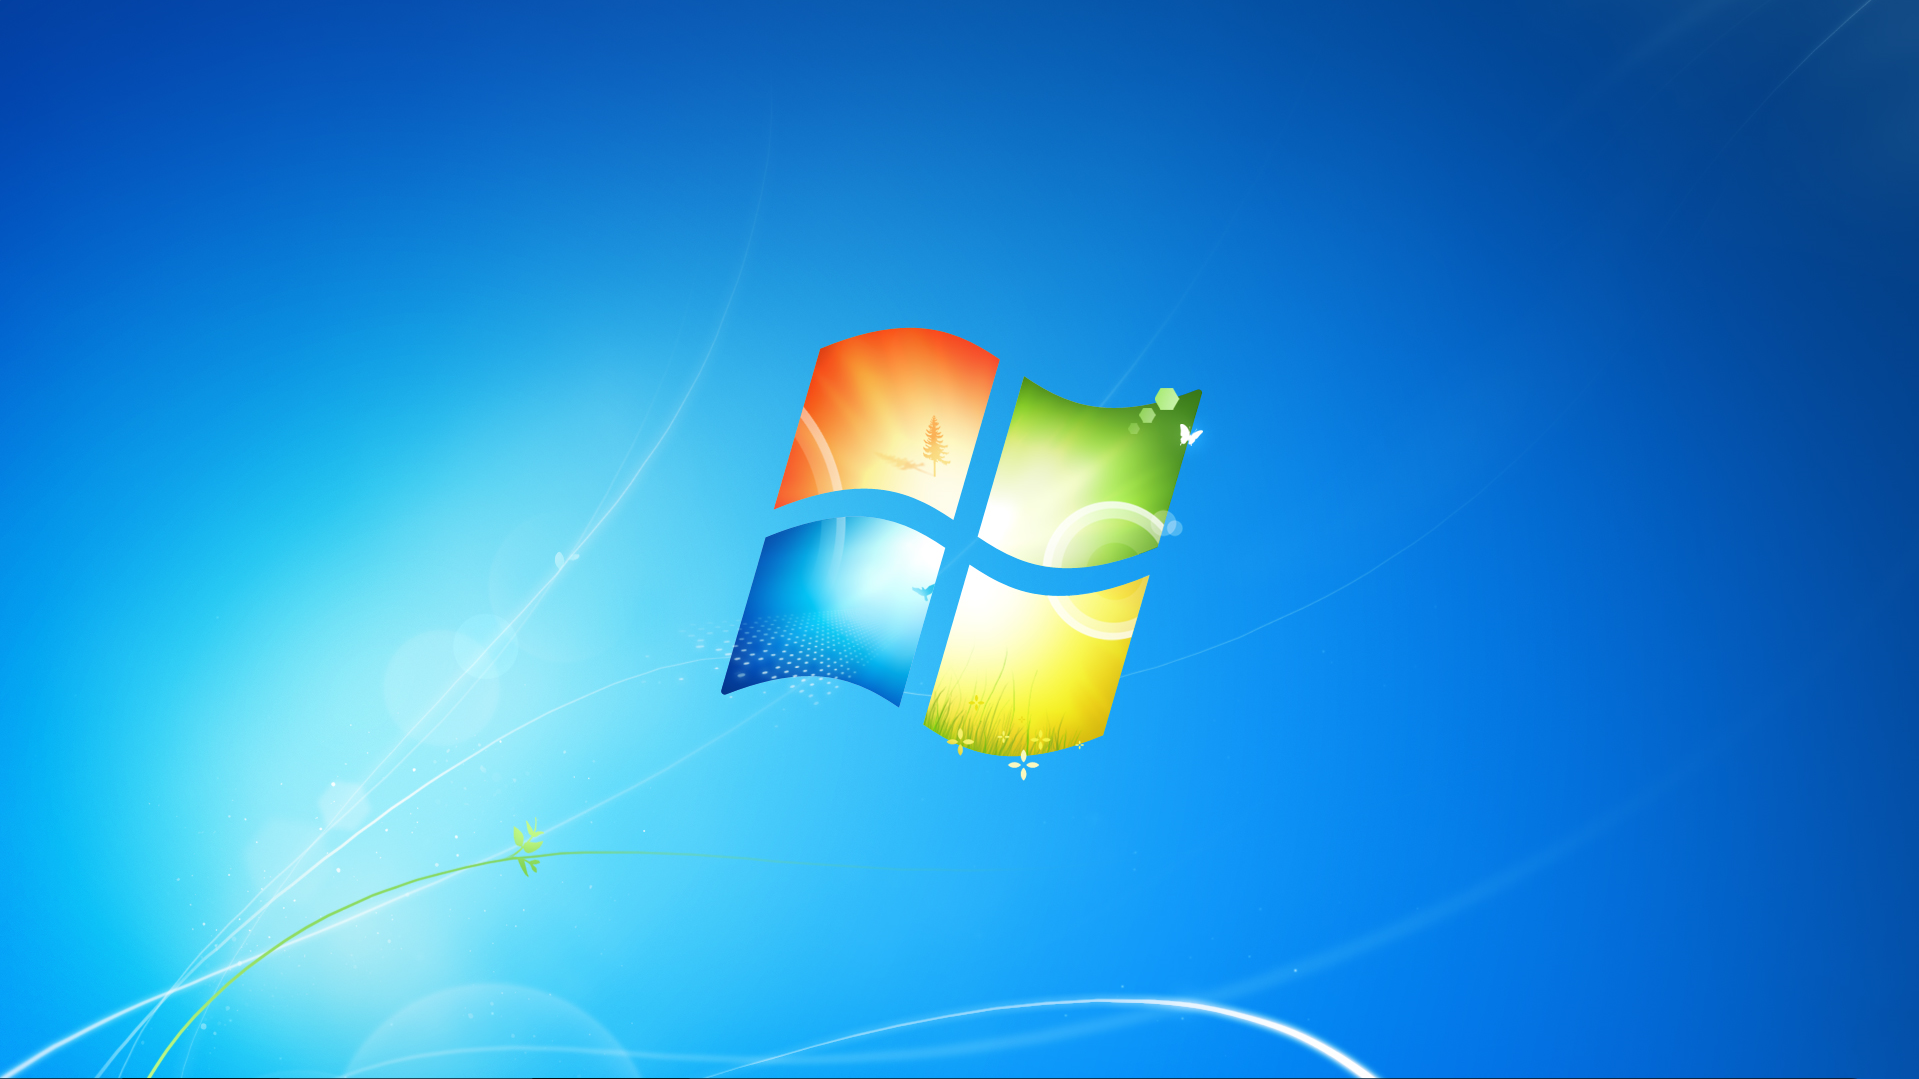 Windows 7 Default wallpaper 1920 x 1080 (With images